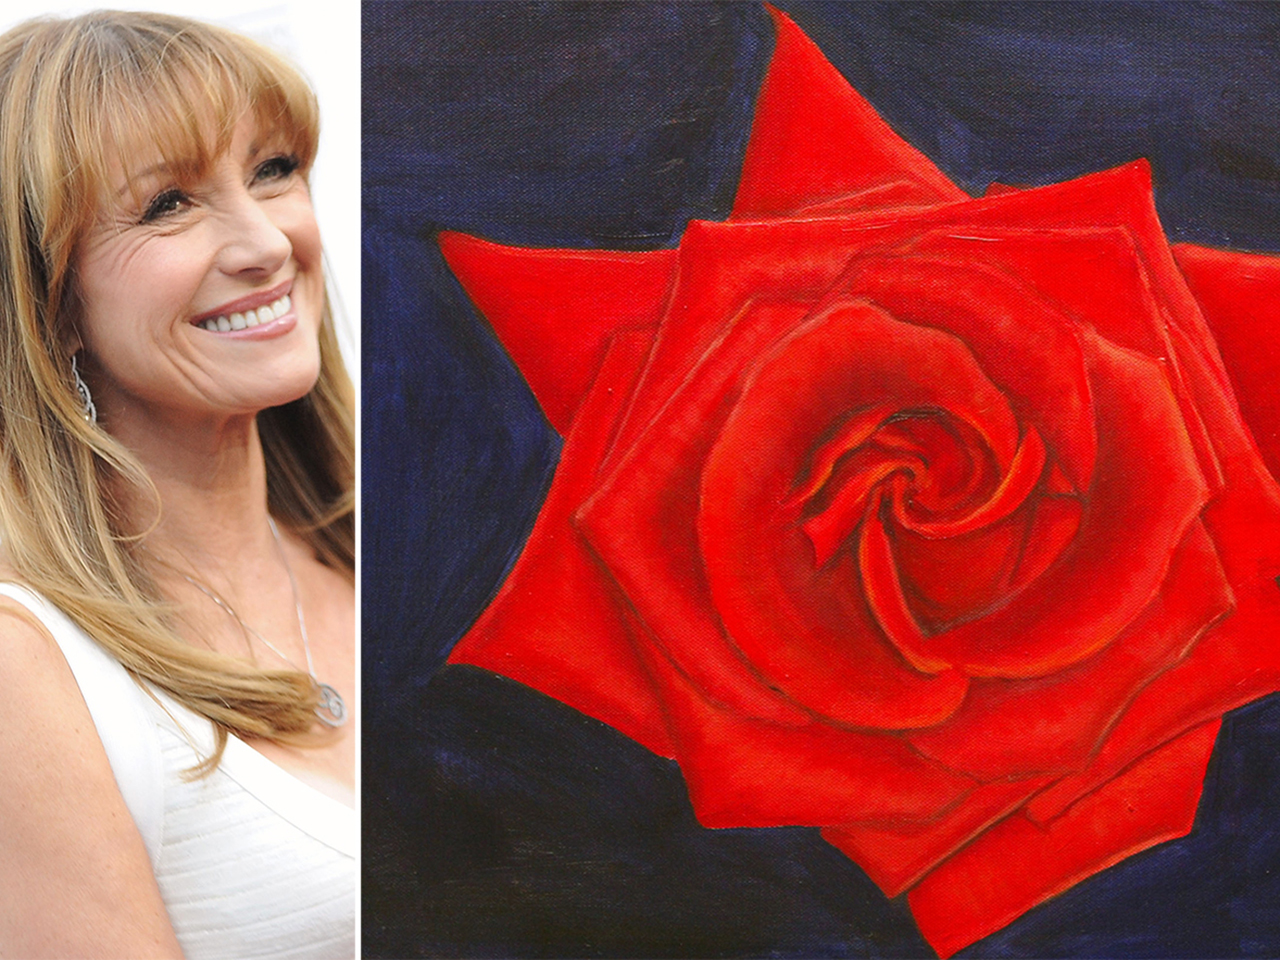 Jane Seymour and a rose painting.